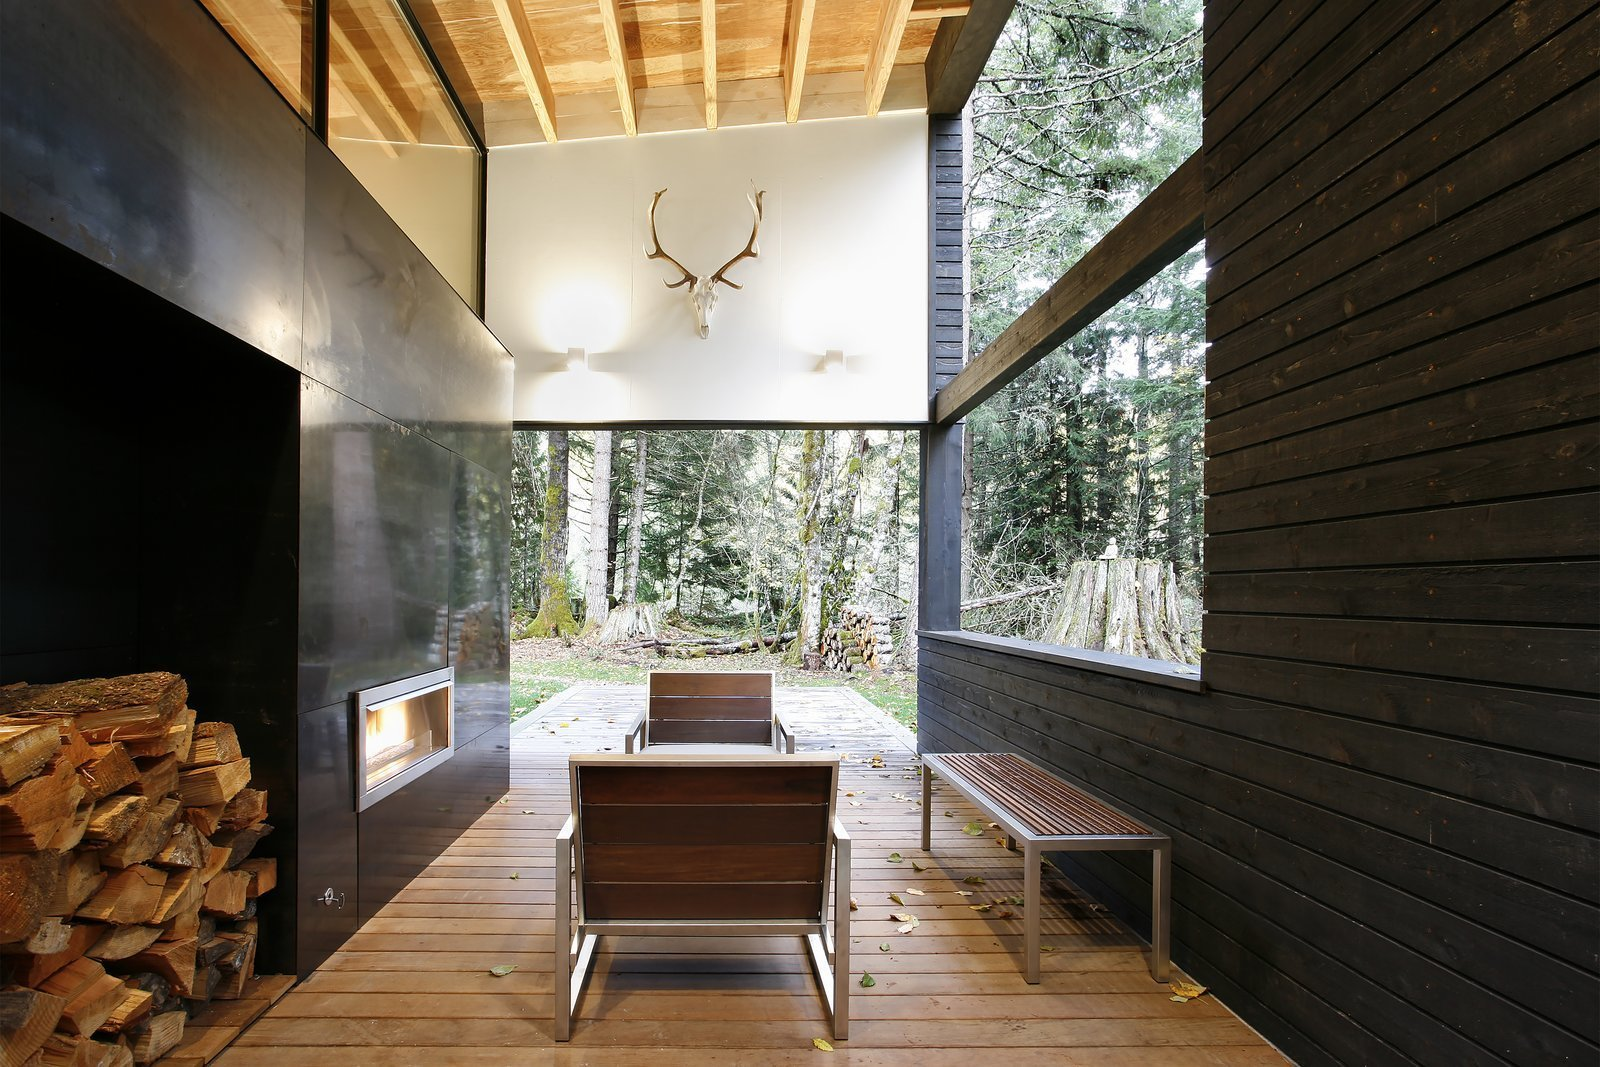 Living Room, Bench, Chair, Wood Burning Fireplace, Ribbon Fireplace, Medium Hardwood Floor, and Wall Lighting In Greenwater, Washington, a courtyard house on a river was designed with a steel-clad fireplace mass that separates the living room from a covered outdoor patio.  Photo 7 of 10 in 10 Modern Fireplaces That Make For Inviting Interiors